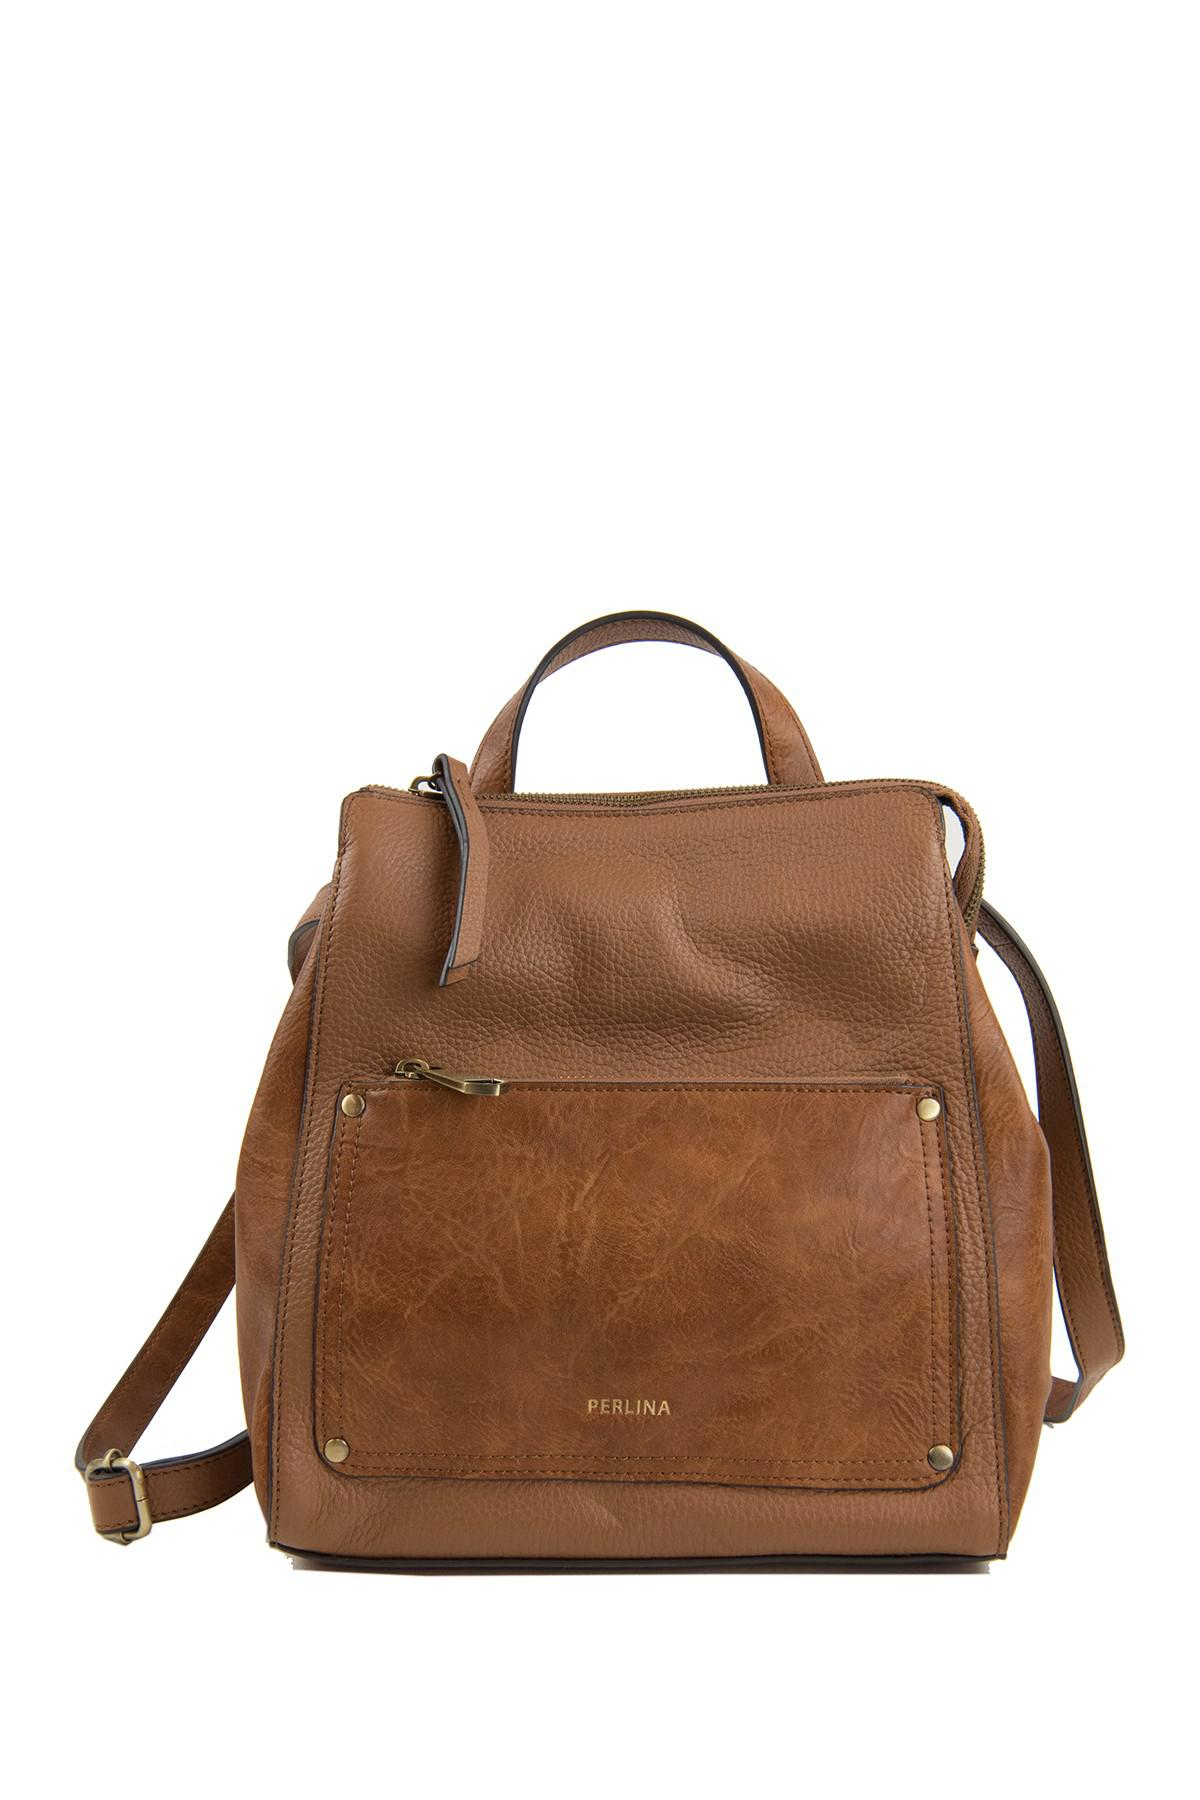 cfe4b940bb6 Perlina Judi Leather Convertible Backpack in Brown - Lyst